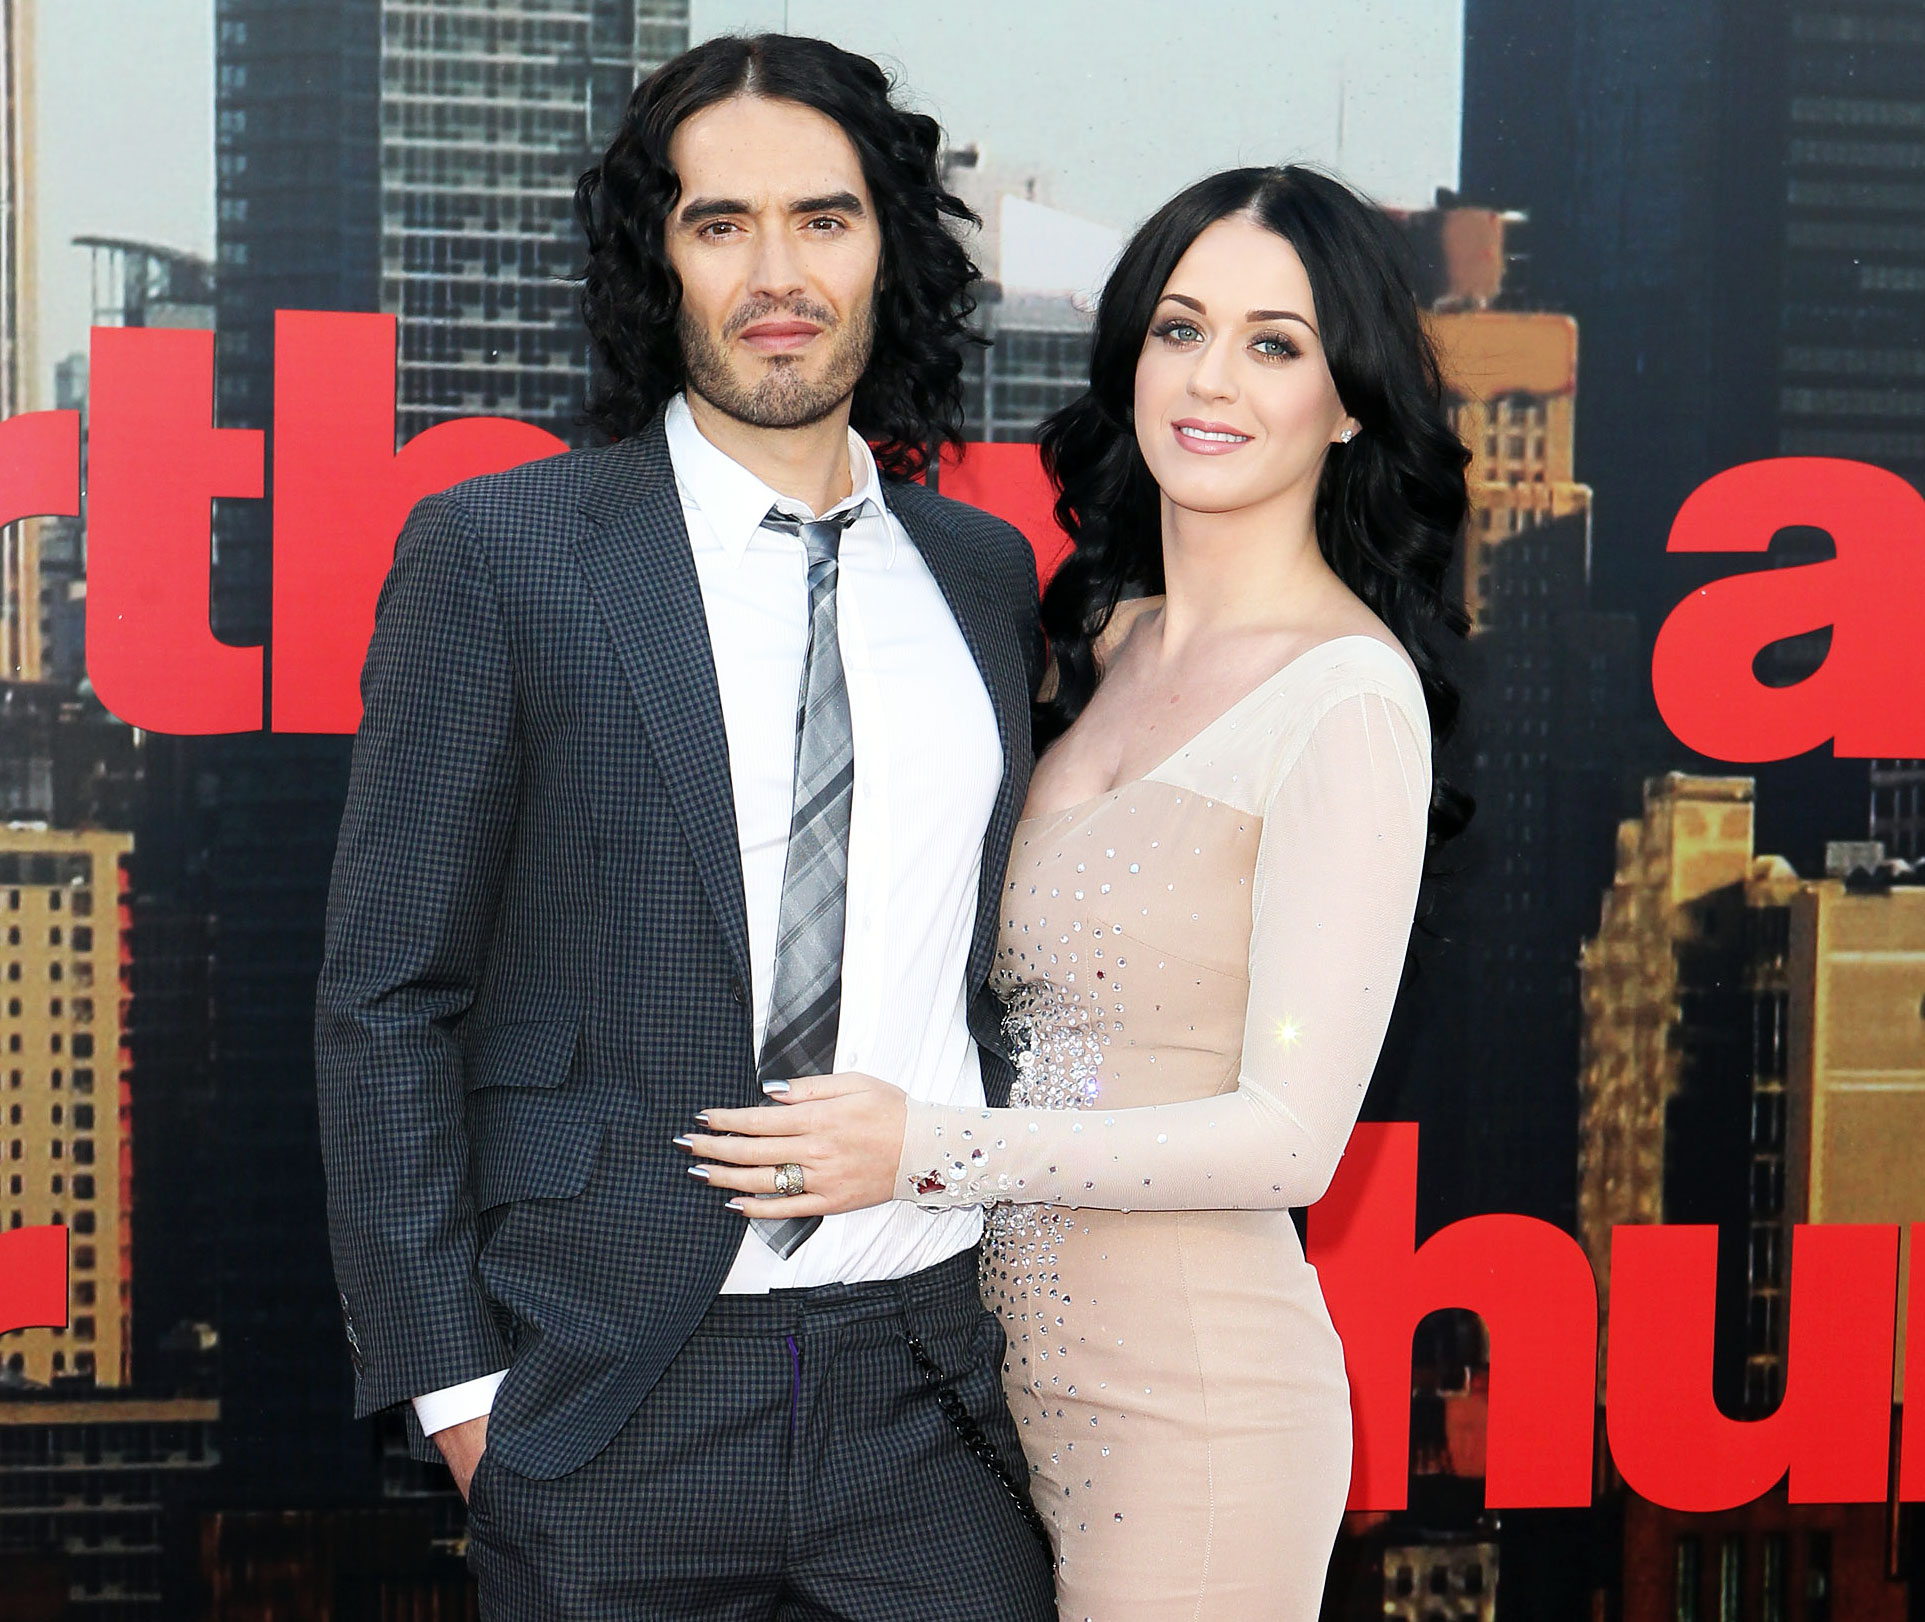 Russell Brand (born 1975) nudes (31 fotos) Feet, YouTube, cameltoe